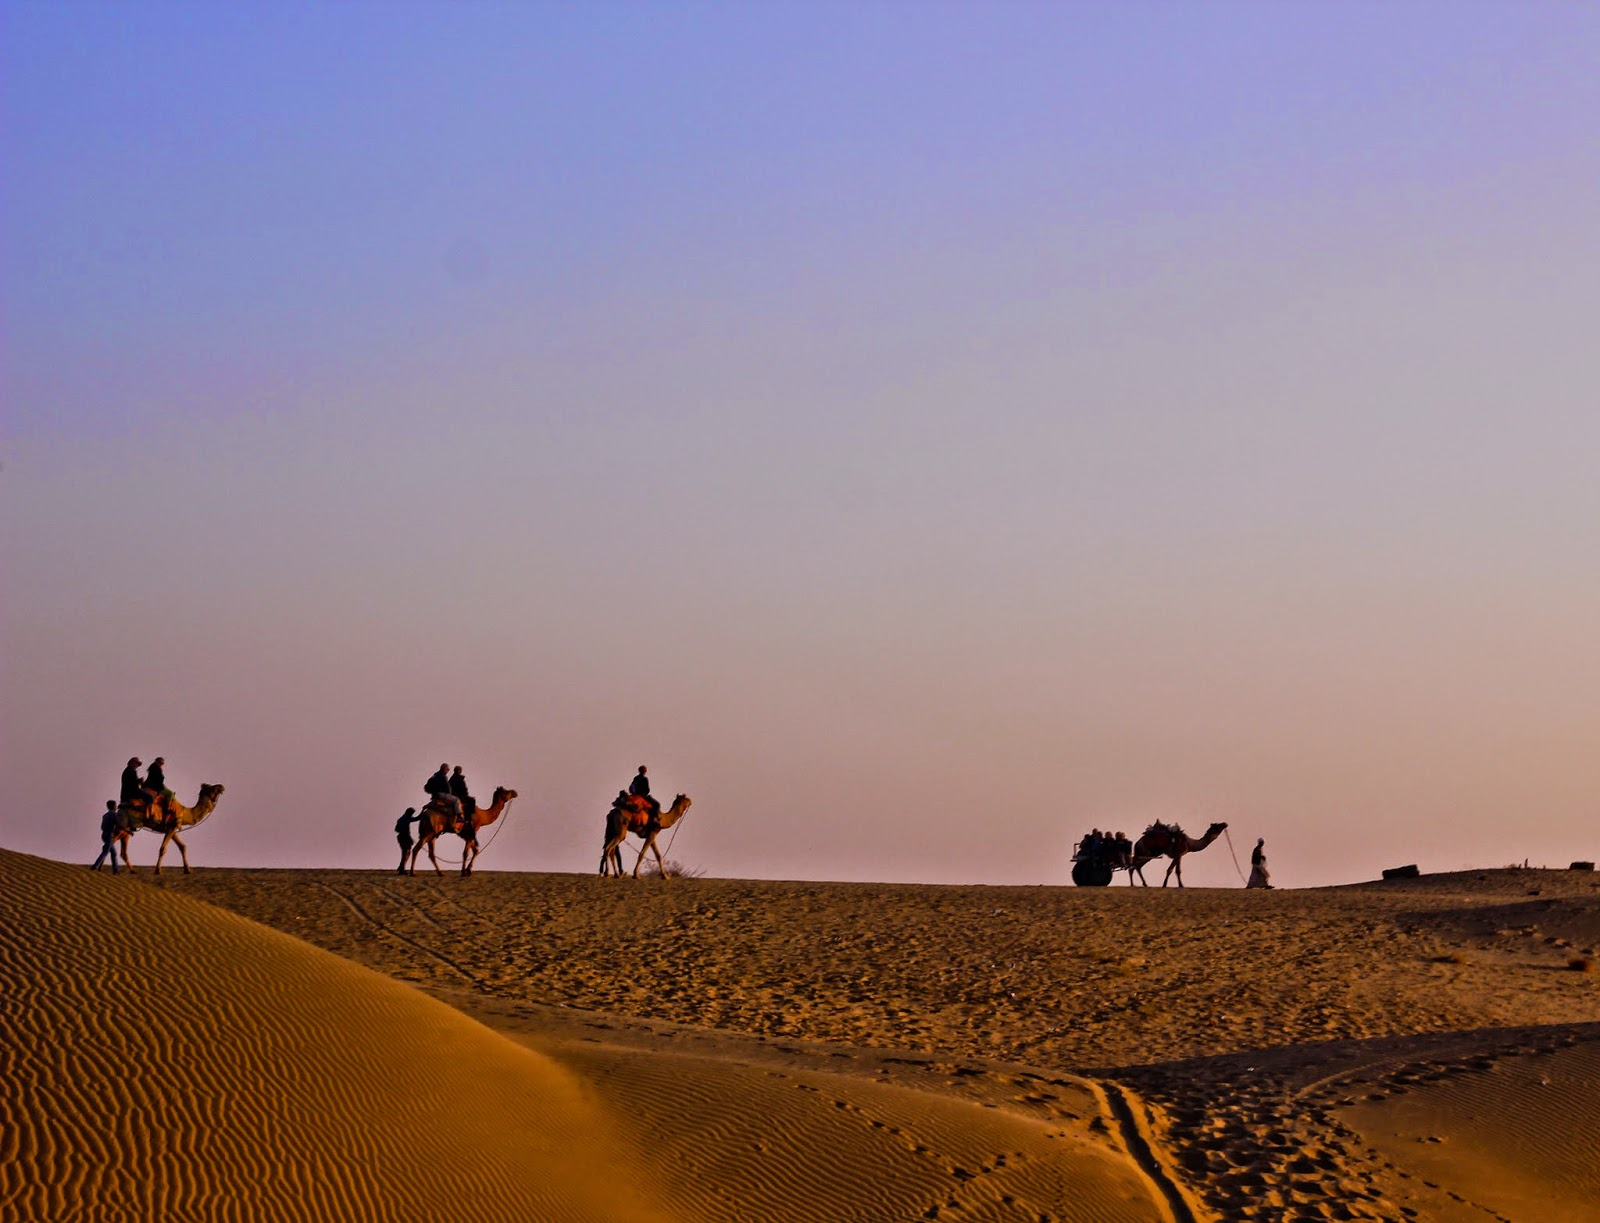 View of camel safari at the Sam Sand Dunes, Jaisalmer